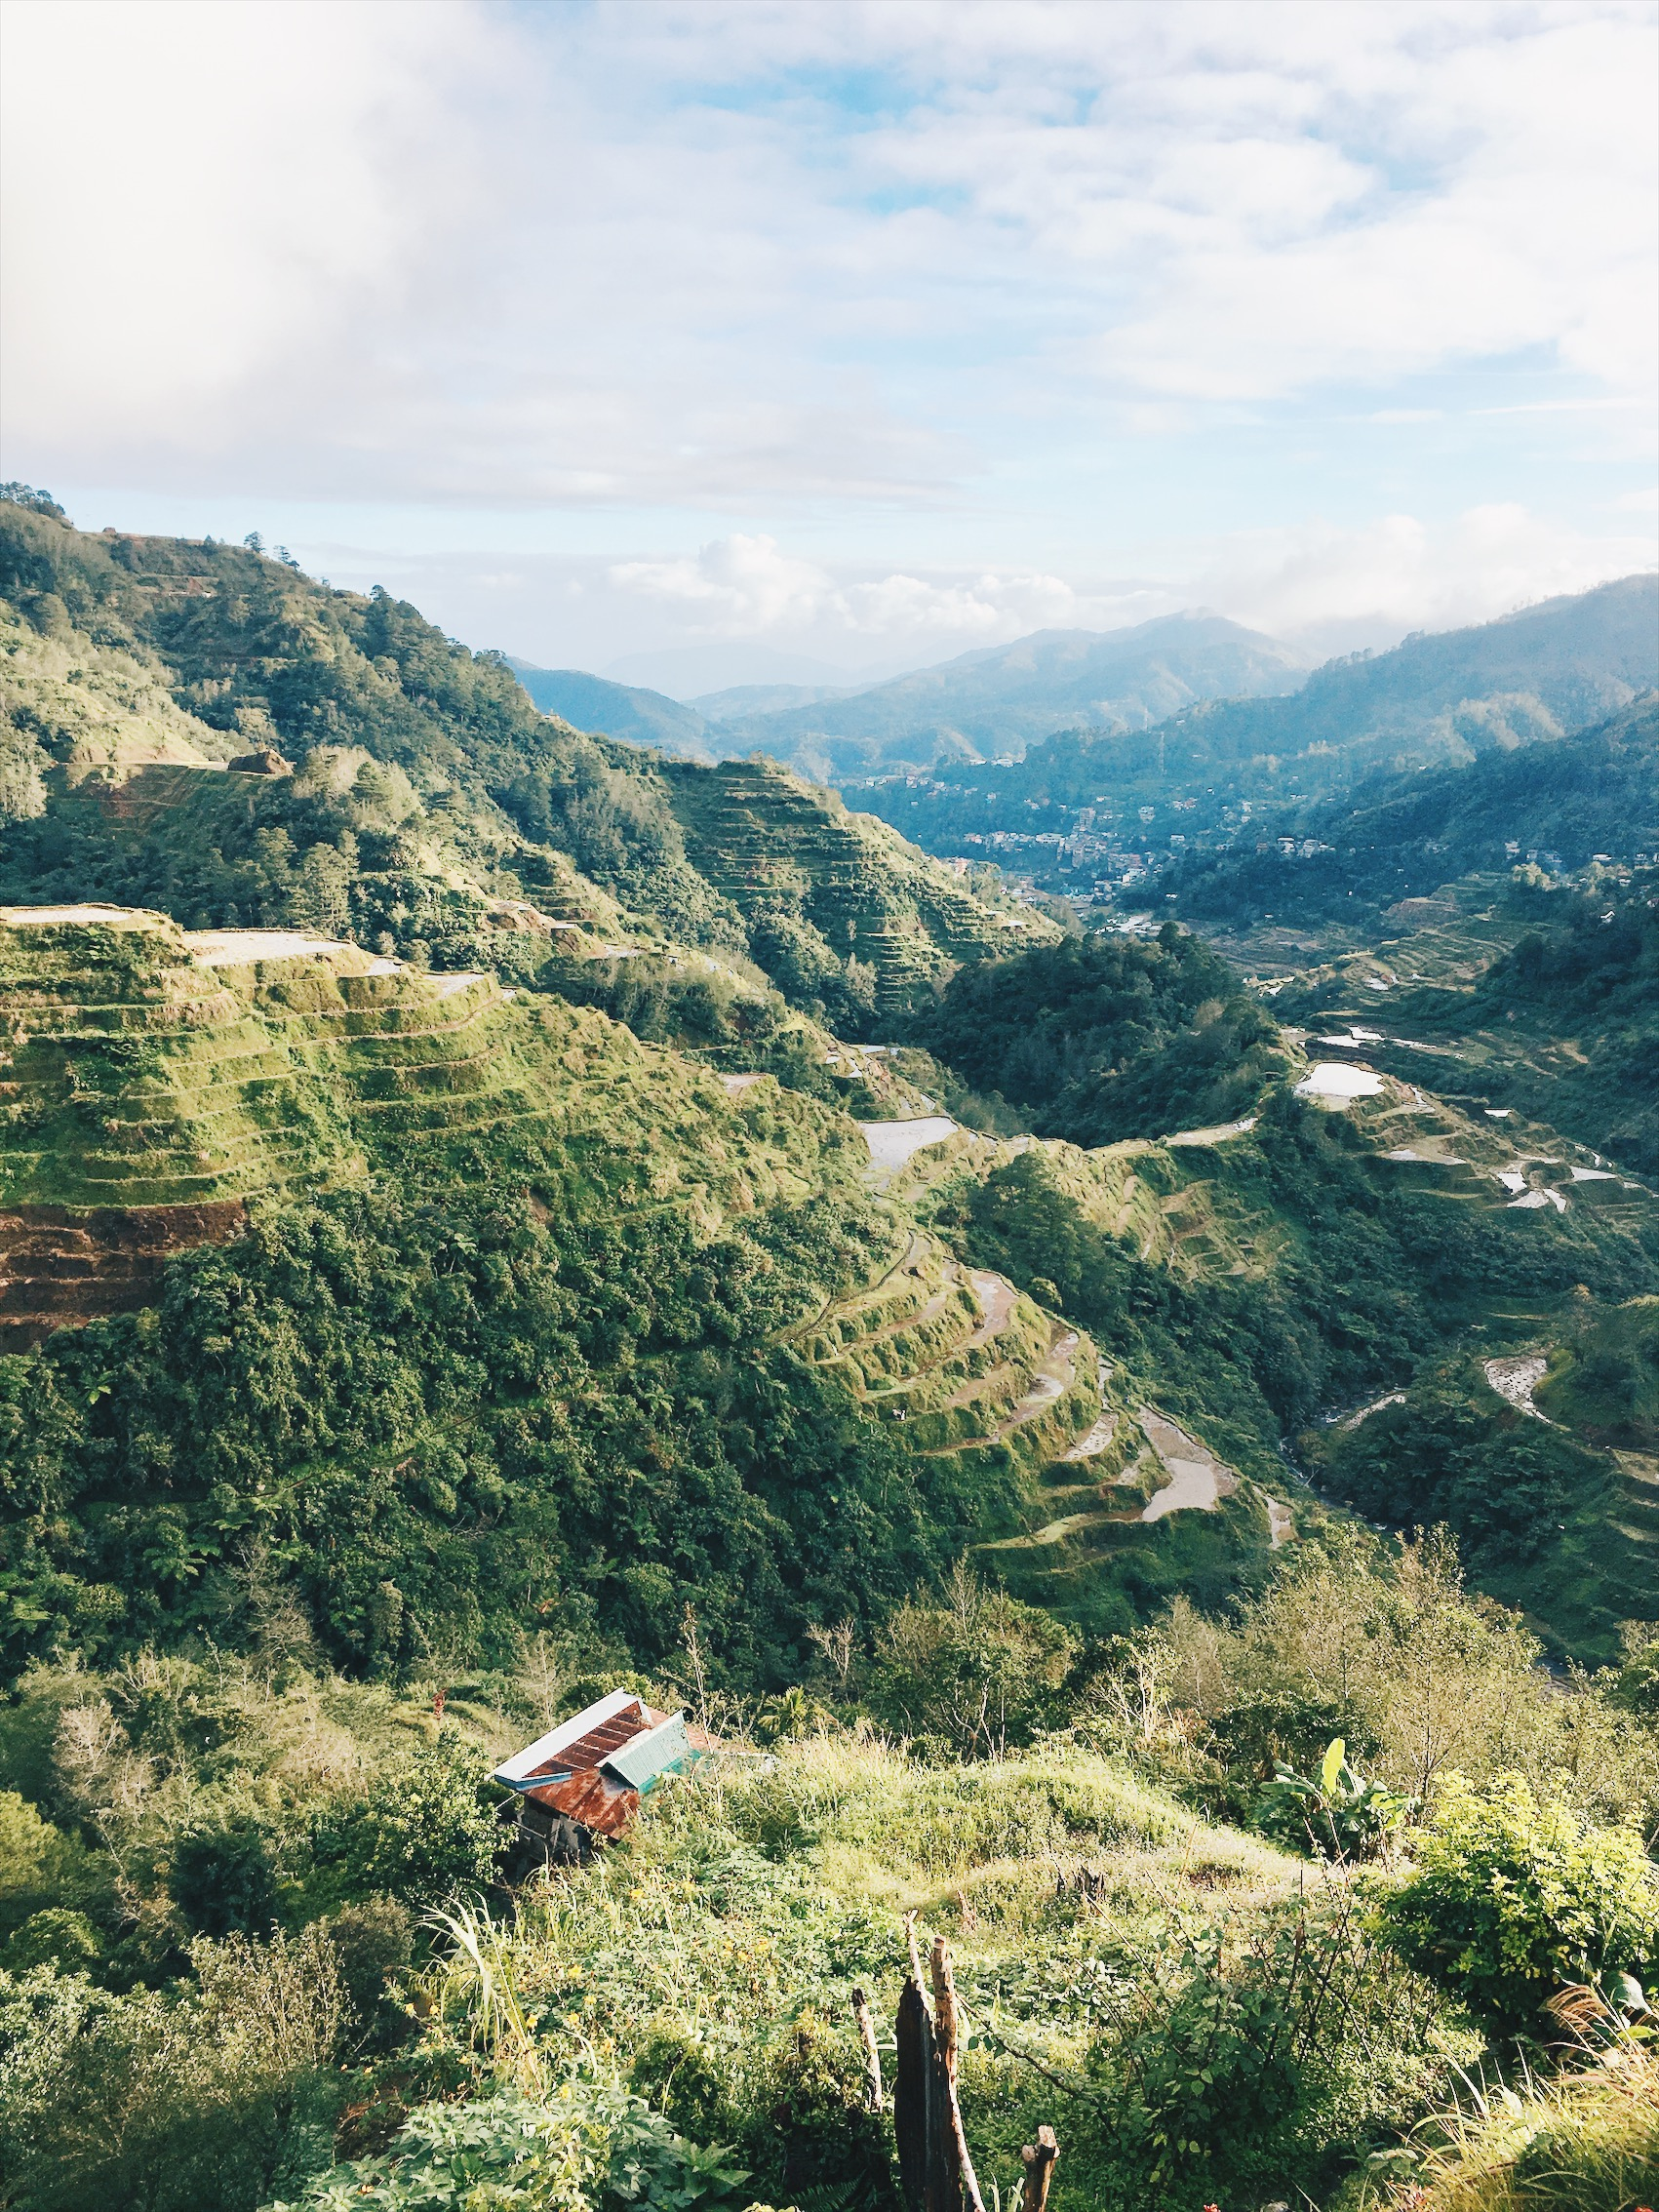 #BaeTravels: Banaue Trip Day 2